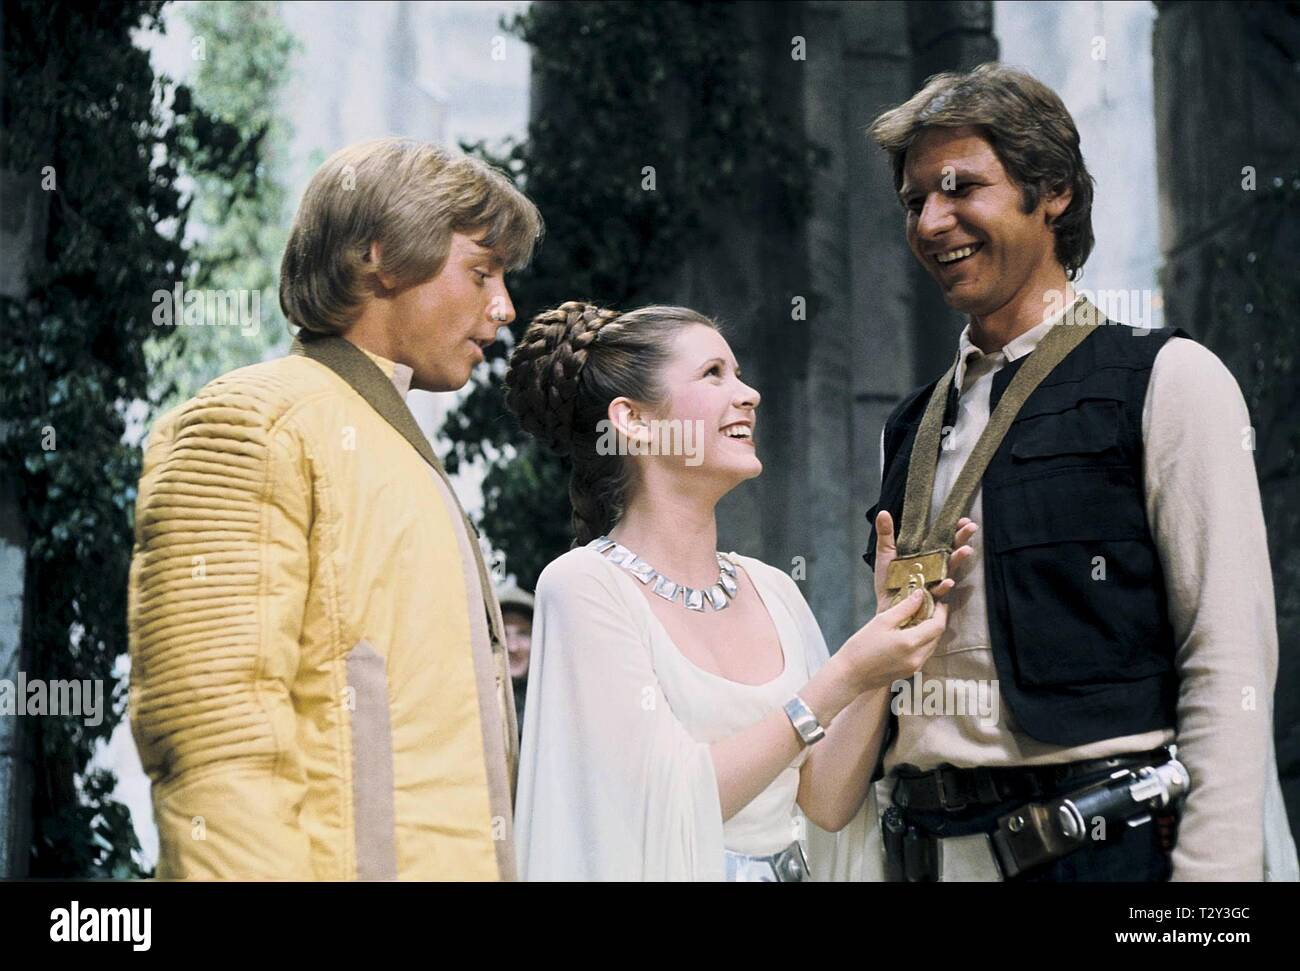 MARK HAMILL, CARRIE FISHER, HARRISON FORD, STAR WARS: EPISODE IV - A NEW HOPE, 1977 - Stock Image